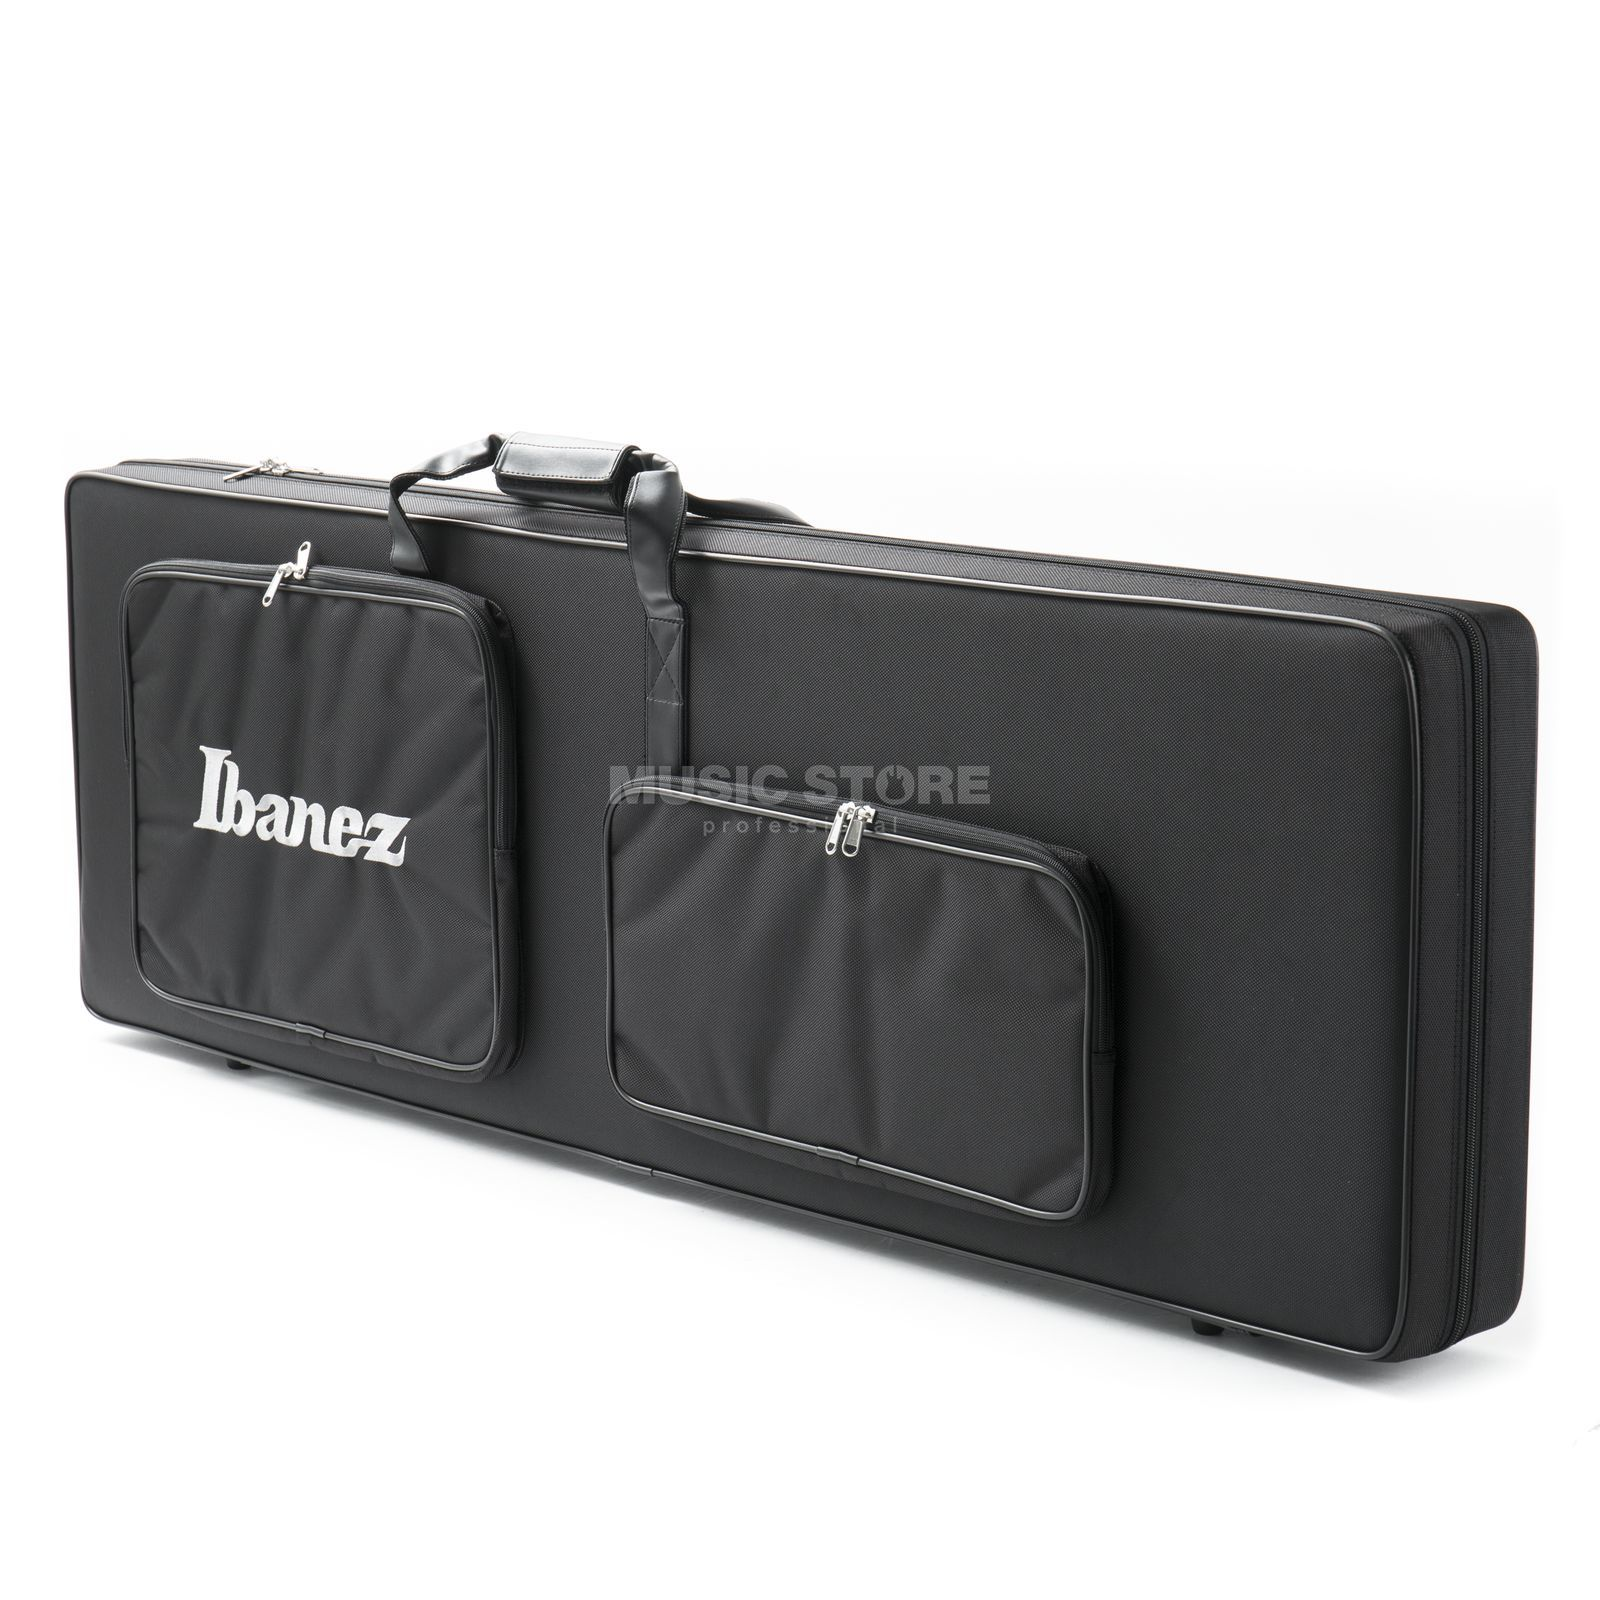 Ibanez M80MC 8-String Guitar Case Produktbild